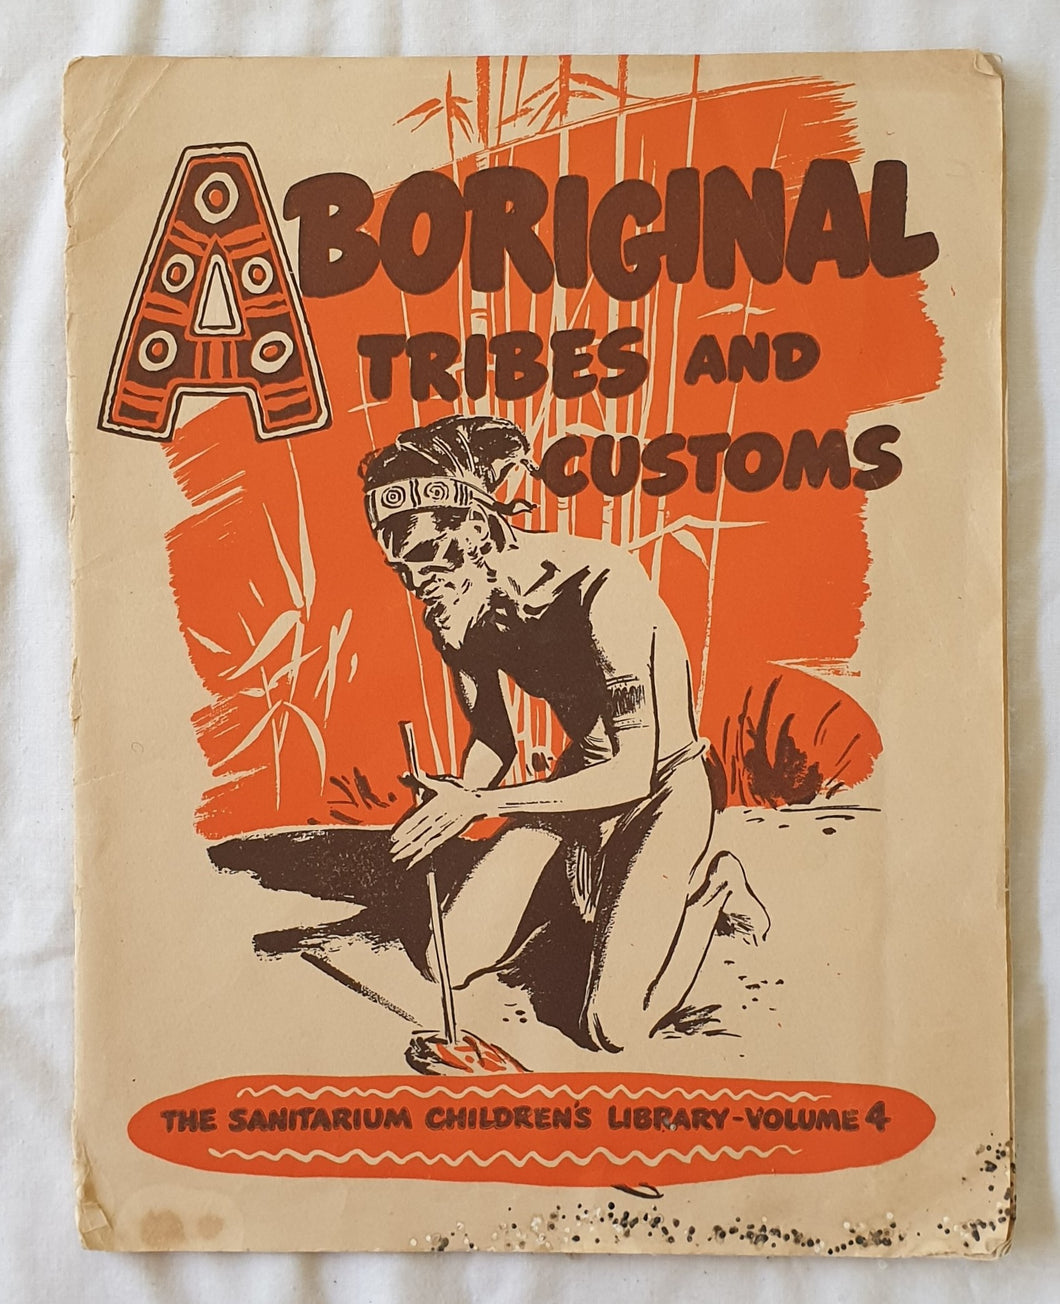 Aboriginal Tribes and Customs The Sanitarium Children's Library – Volume 4